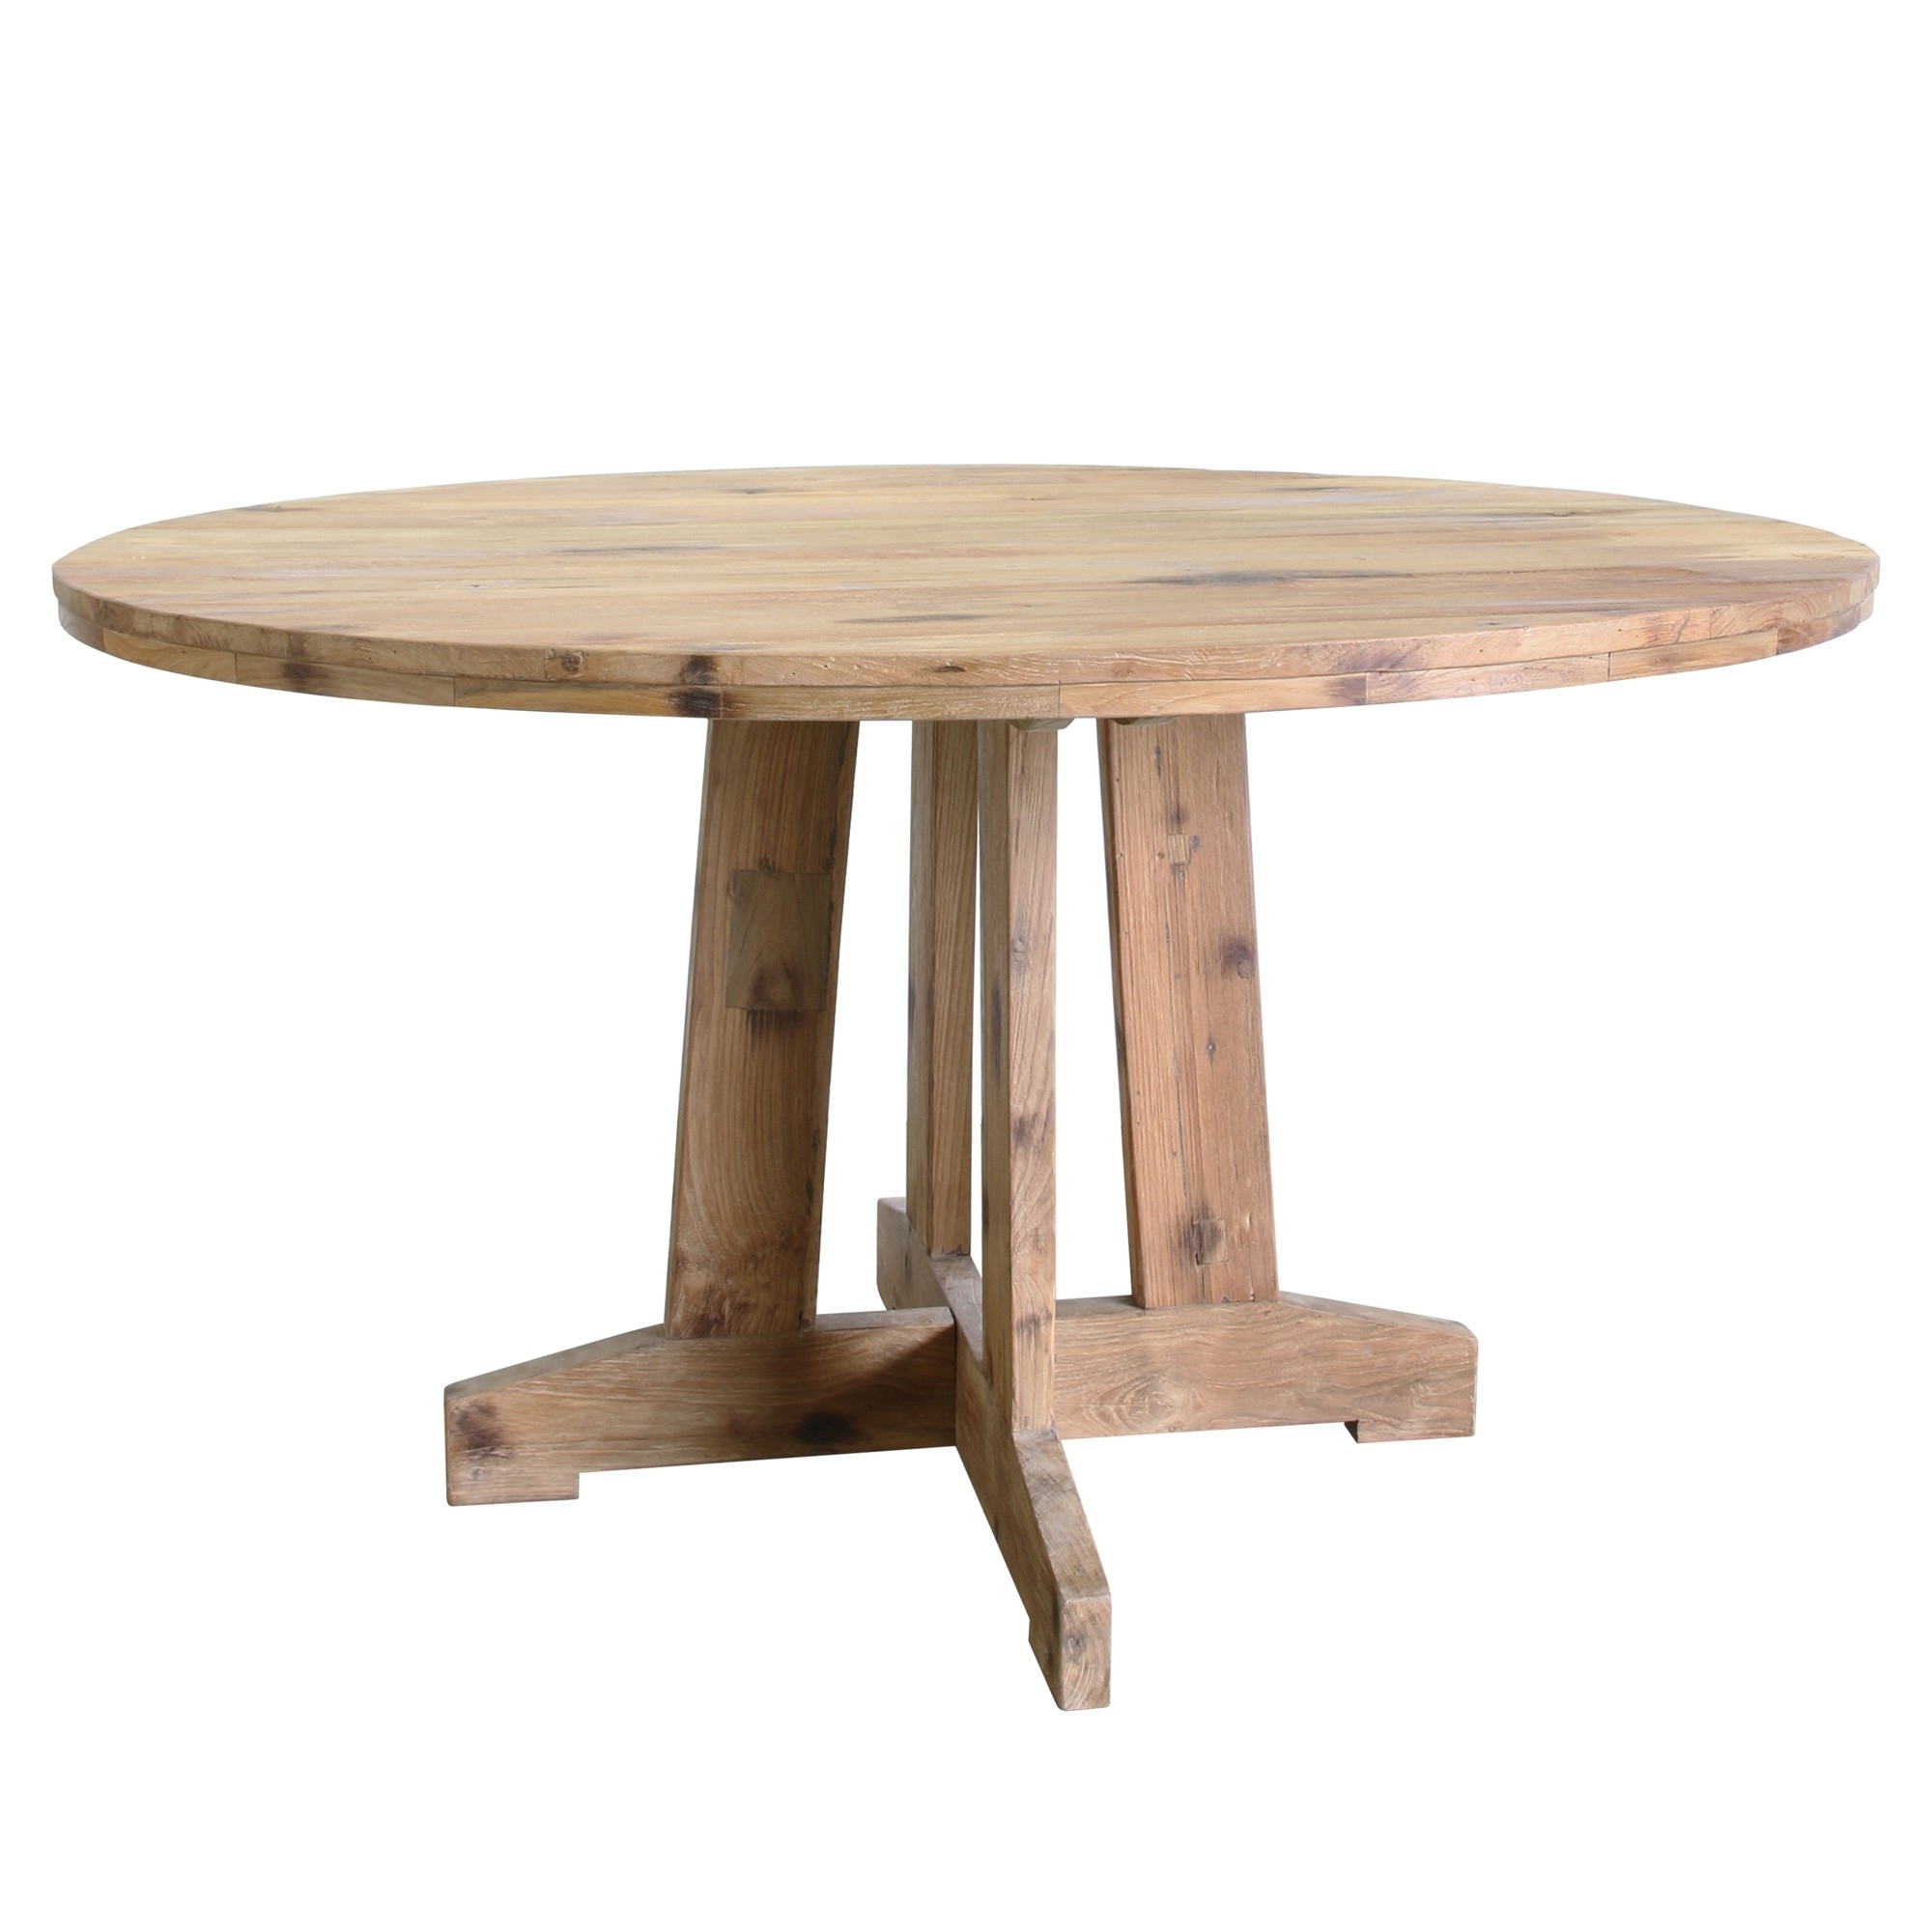 Newest Round Reclaimed Teak Dining Table With Round Teak Dining Tables (View 10 of 25)